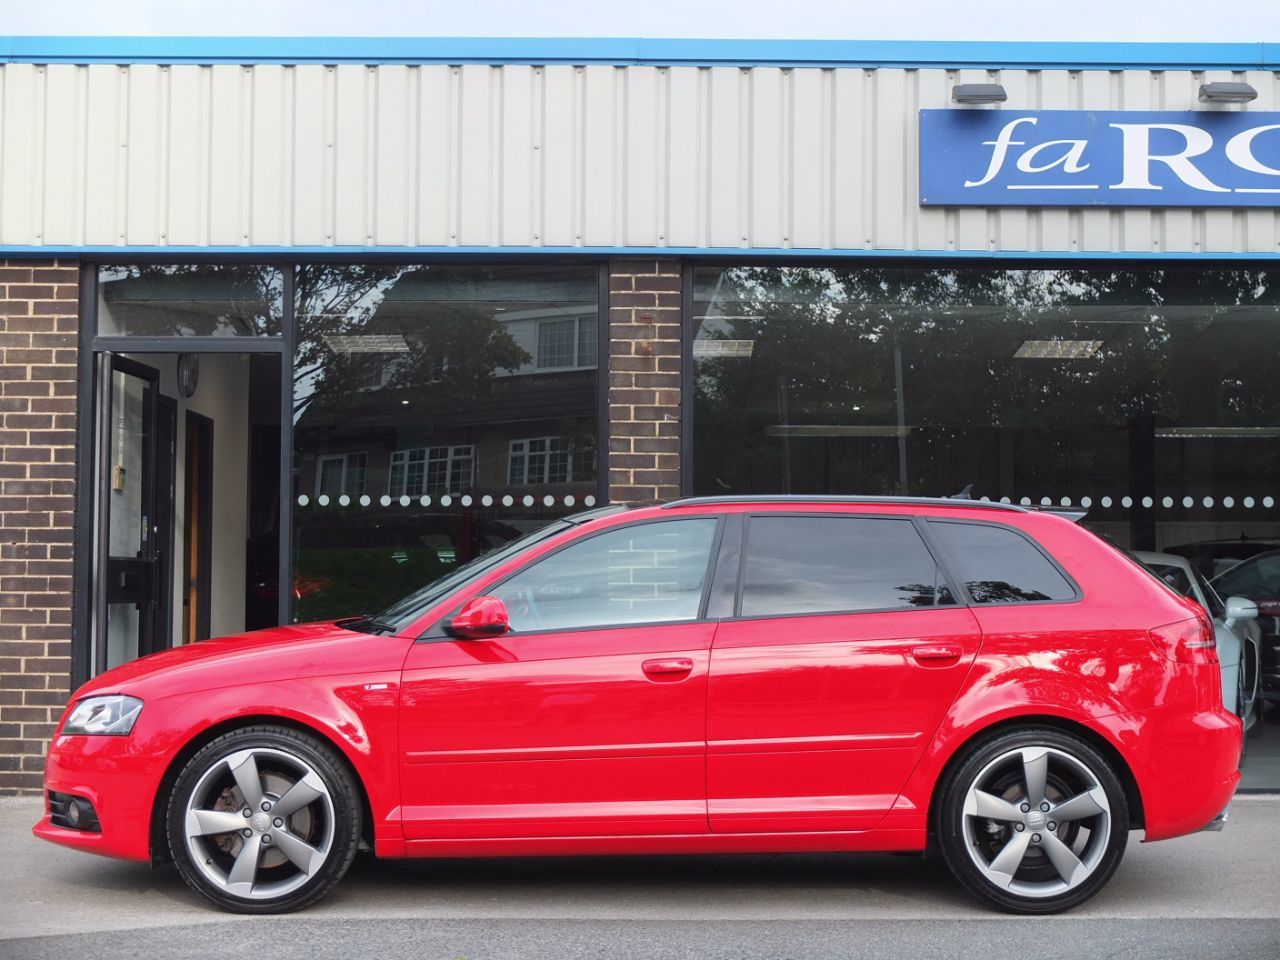 Audi A3 Sportback 2.0 TDI 170 Black Edition (Satellite Navigation/Pan Roof) Hatchback Diesel Brilliant Red